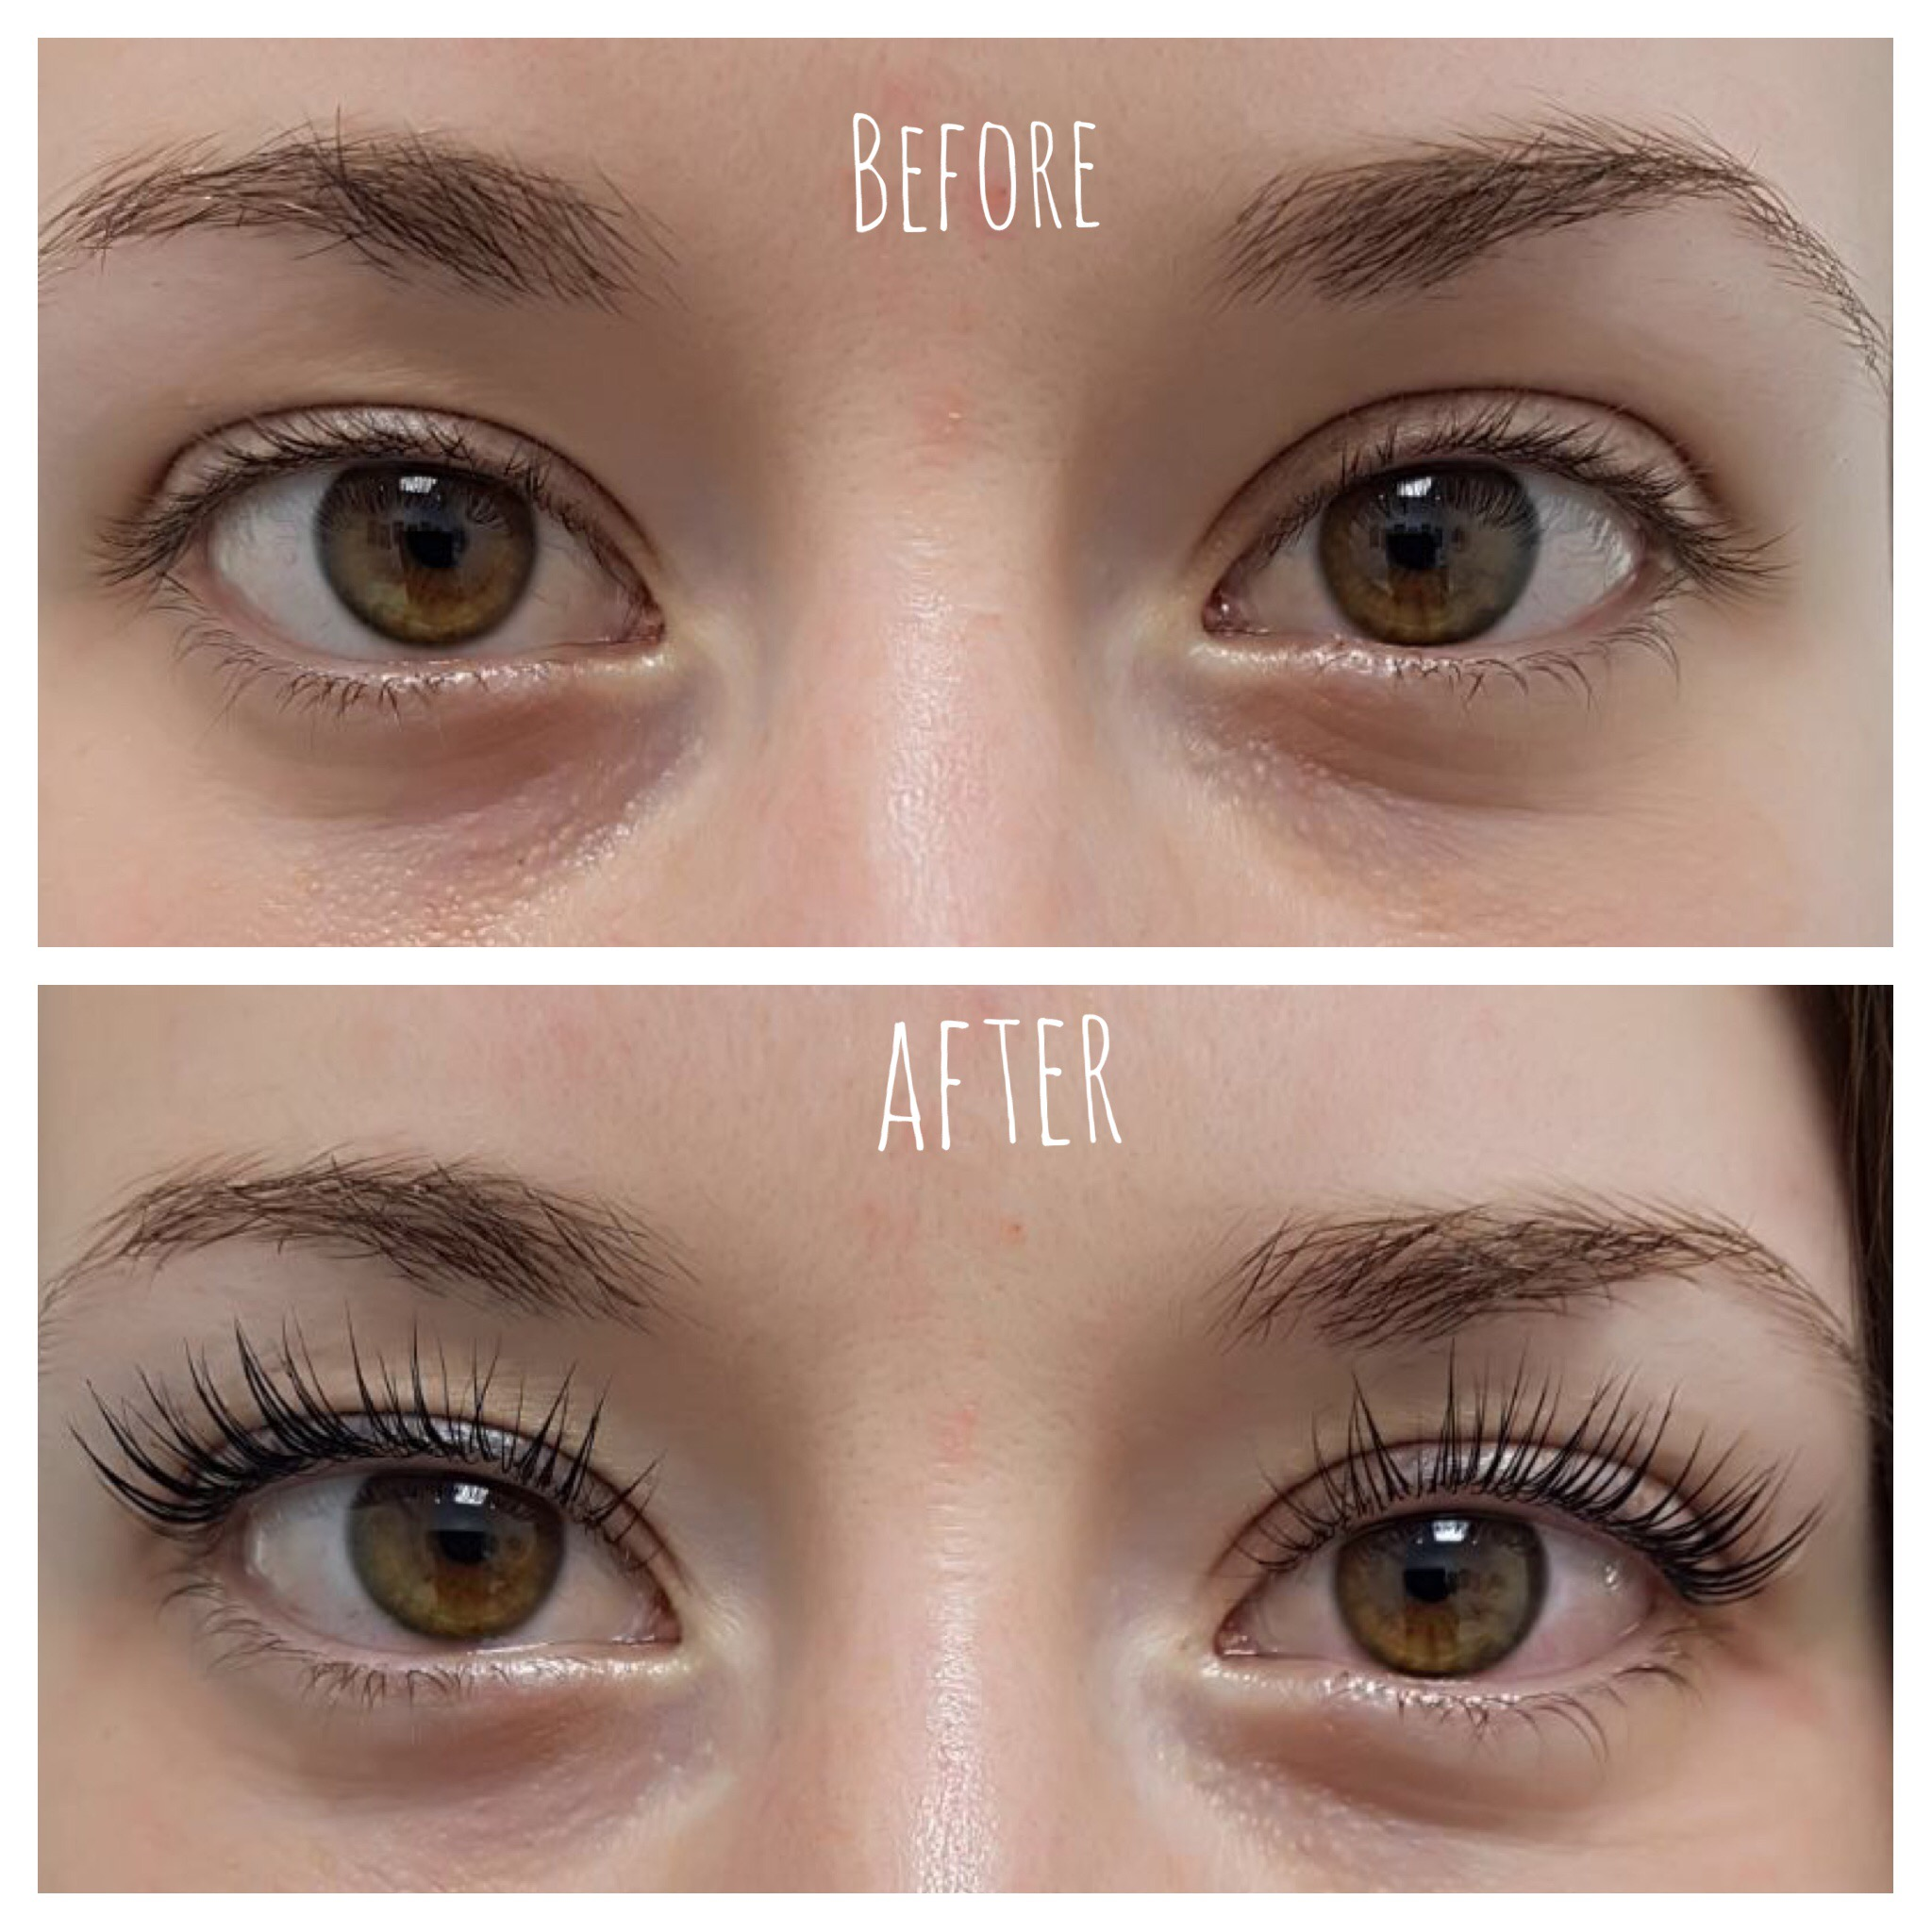 8a4ef02d8e7 If you want fabulous natural lashes, this is the revolutionary alternative  to lash extensions. LVL lash-lifting treatment ...